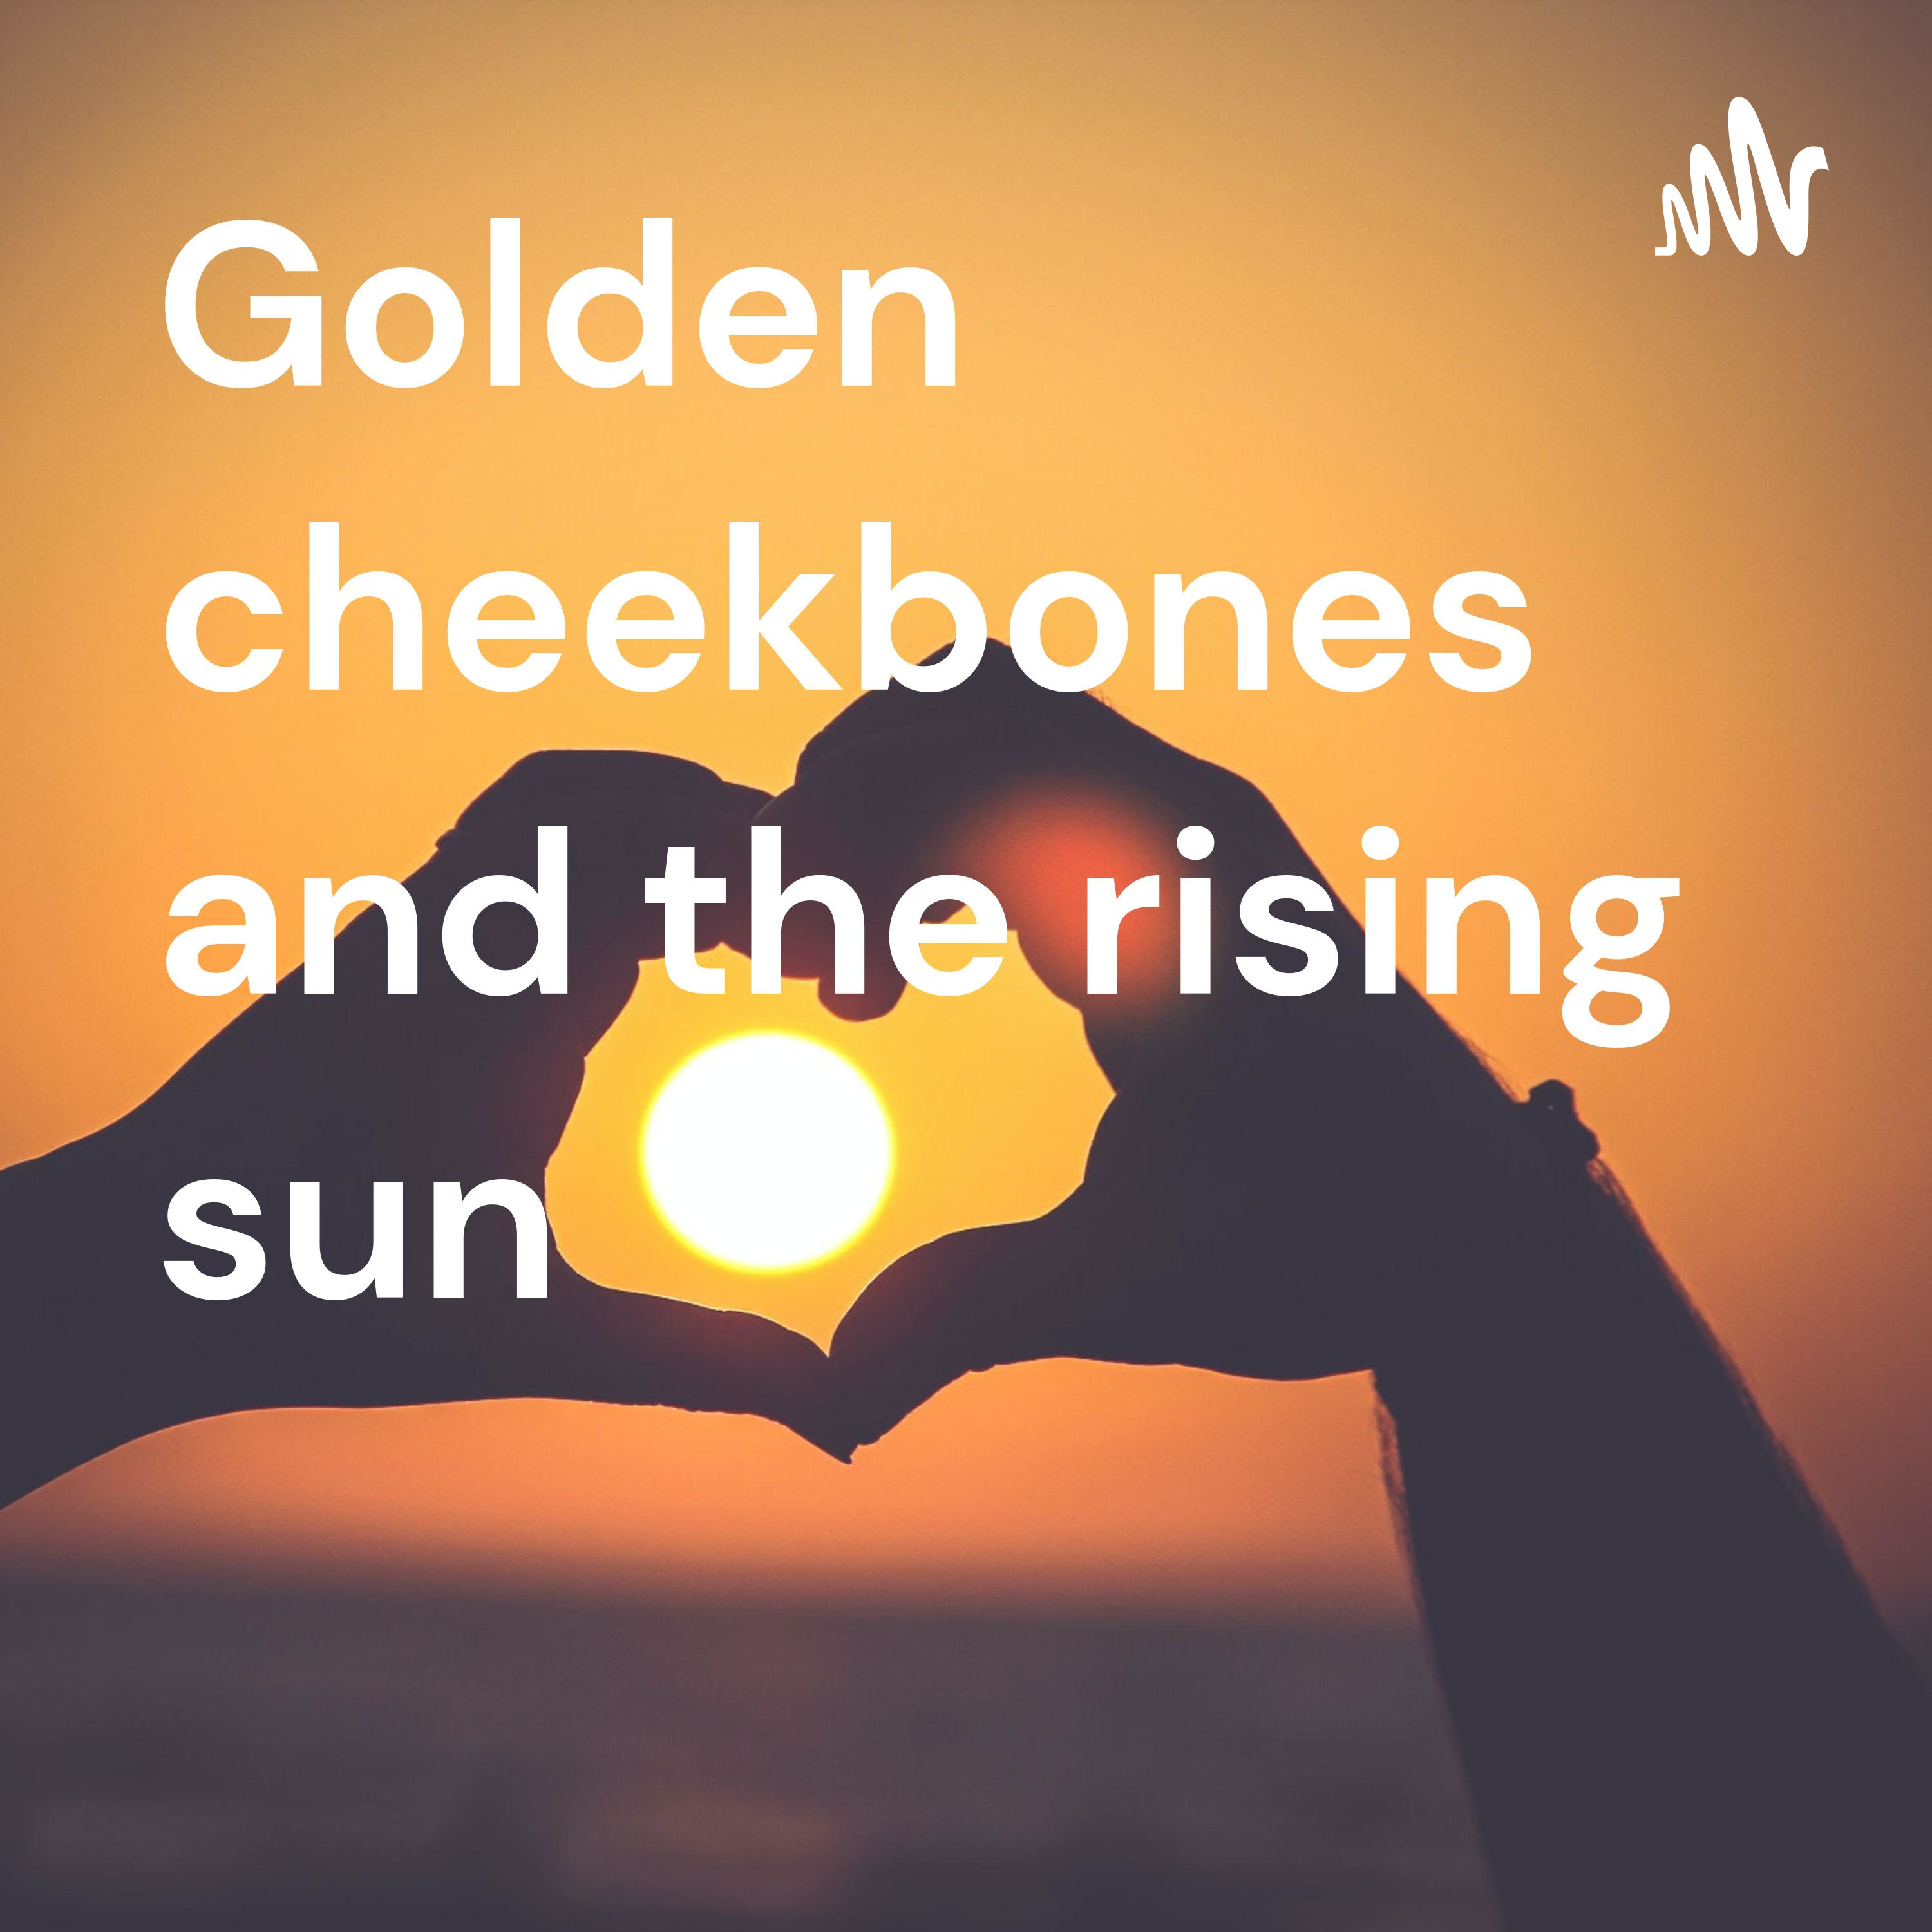 Golden cheekbones and the rising sun 😊 • A podcast on Anchor